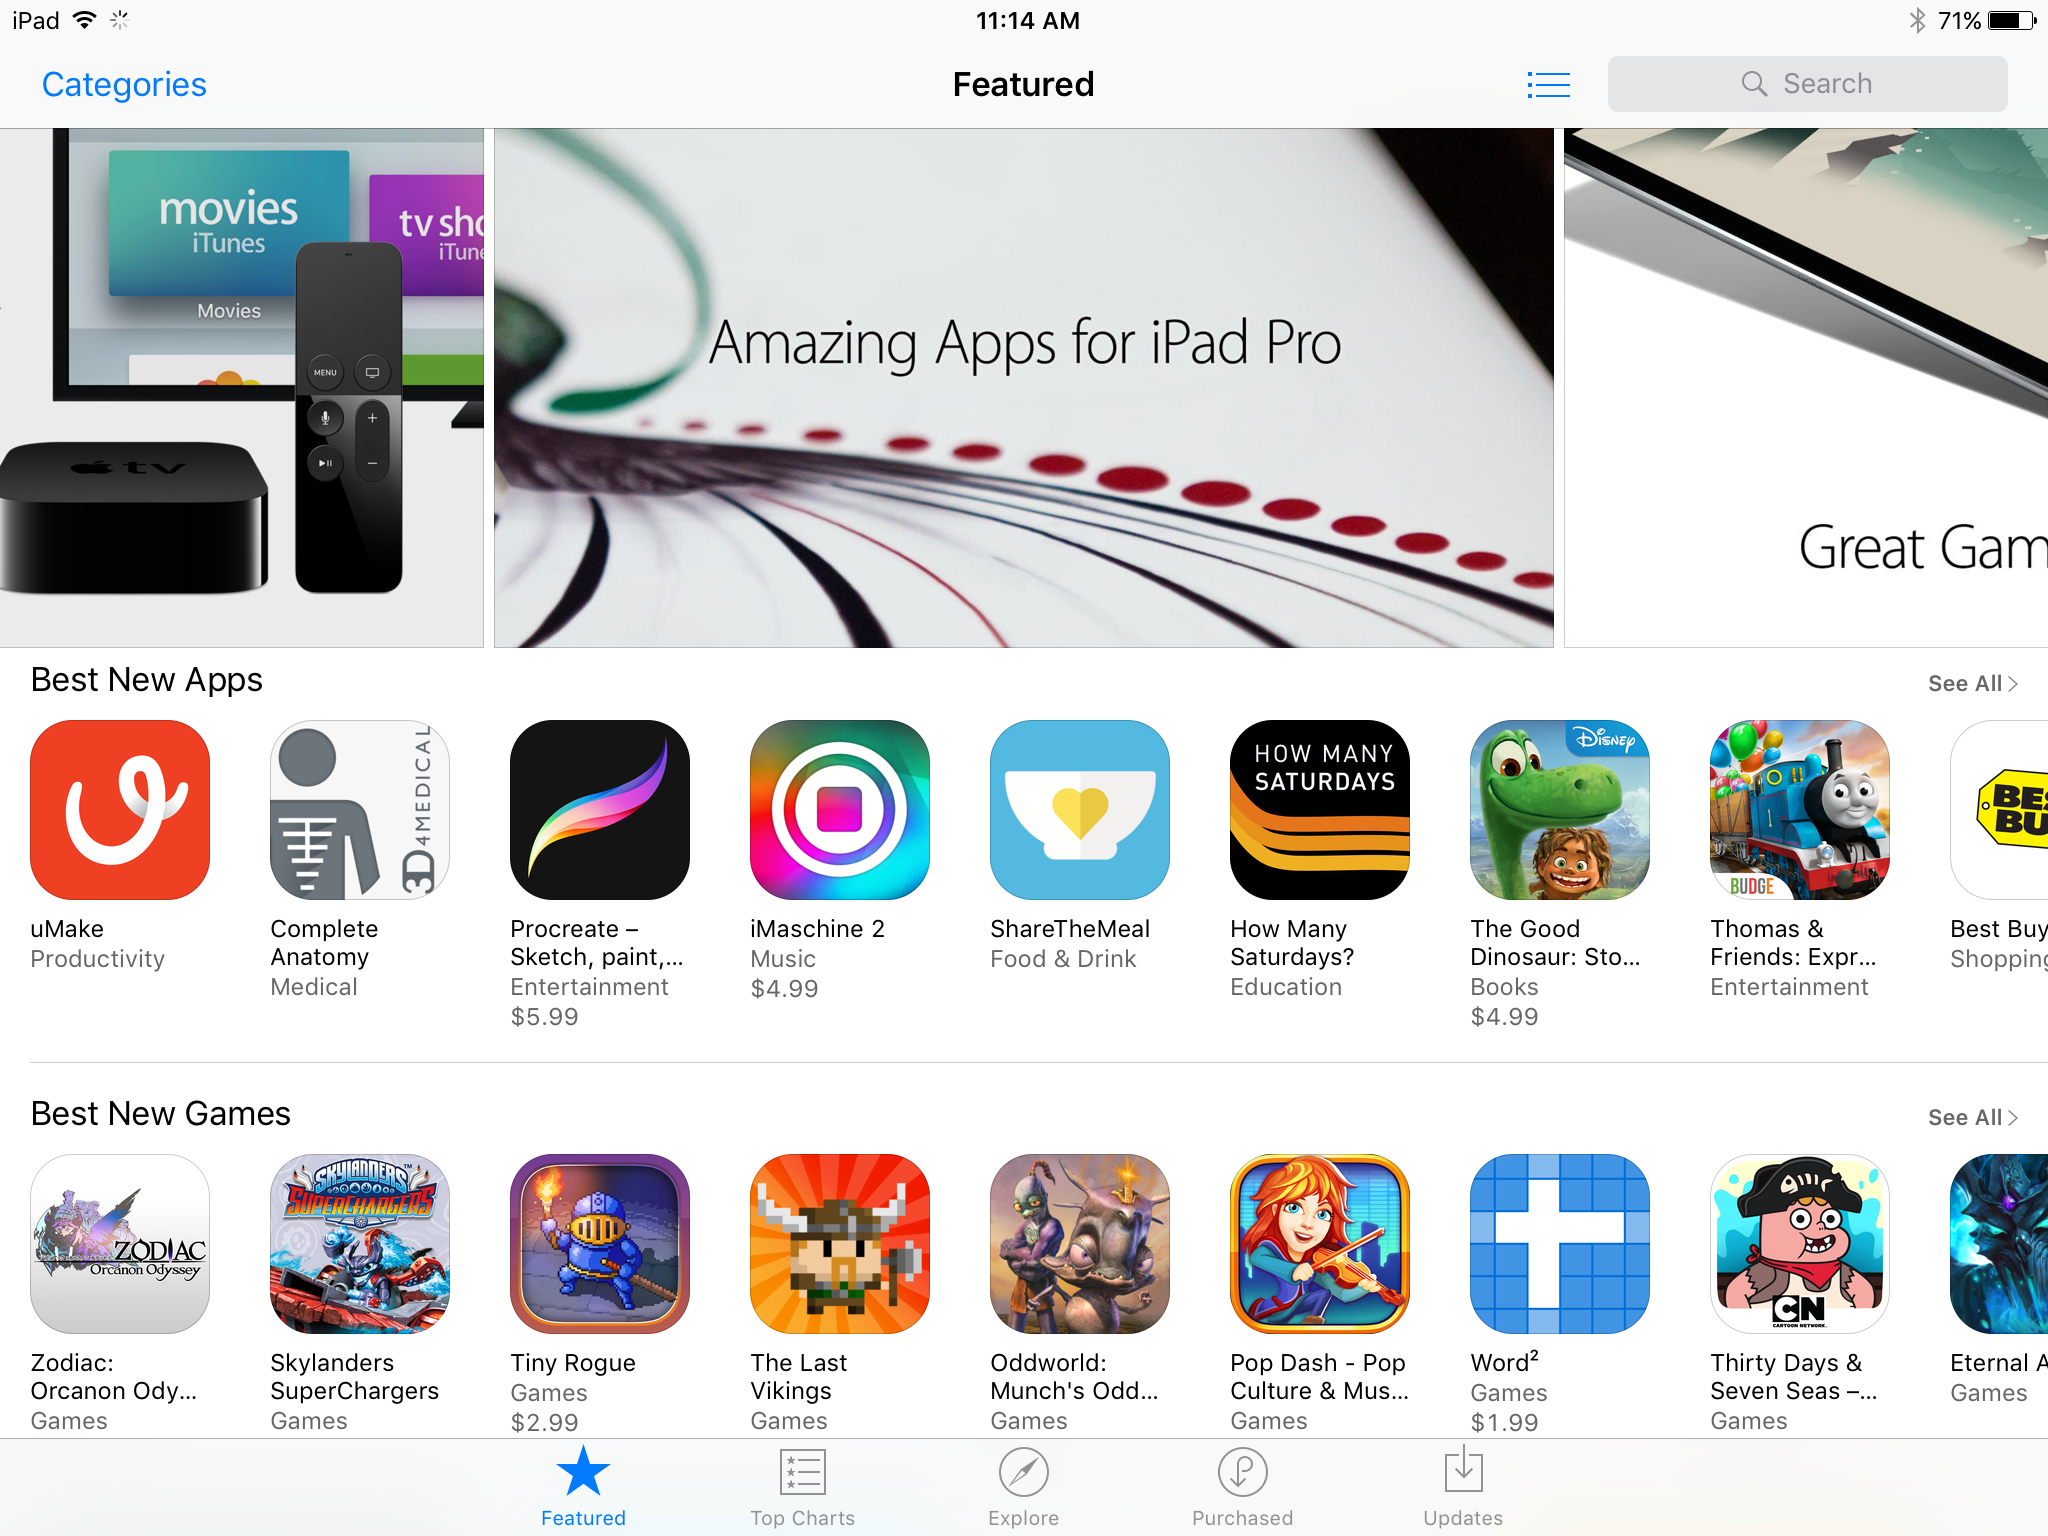 Search once again gets smarter in Apple's App Store